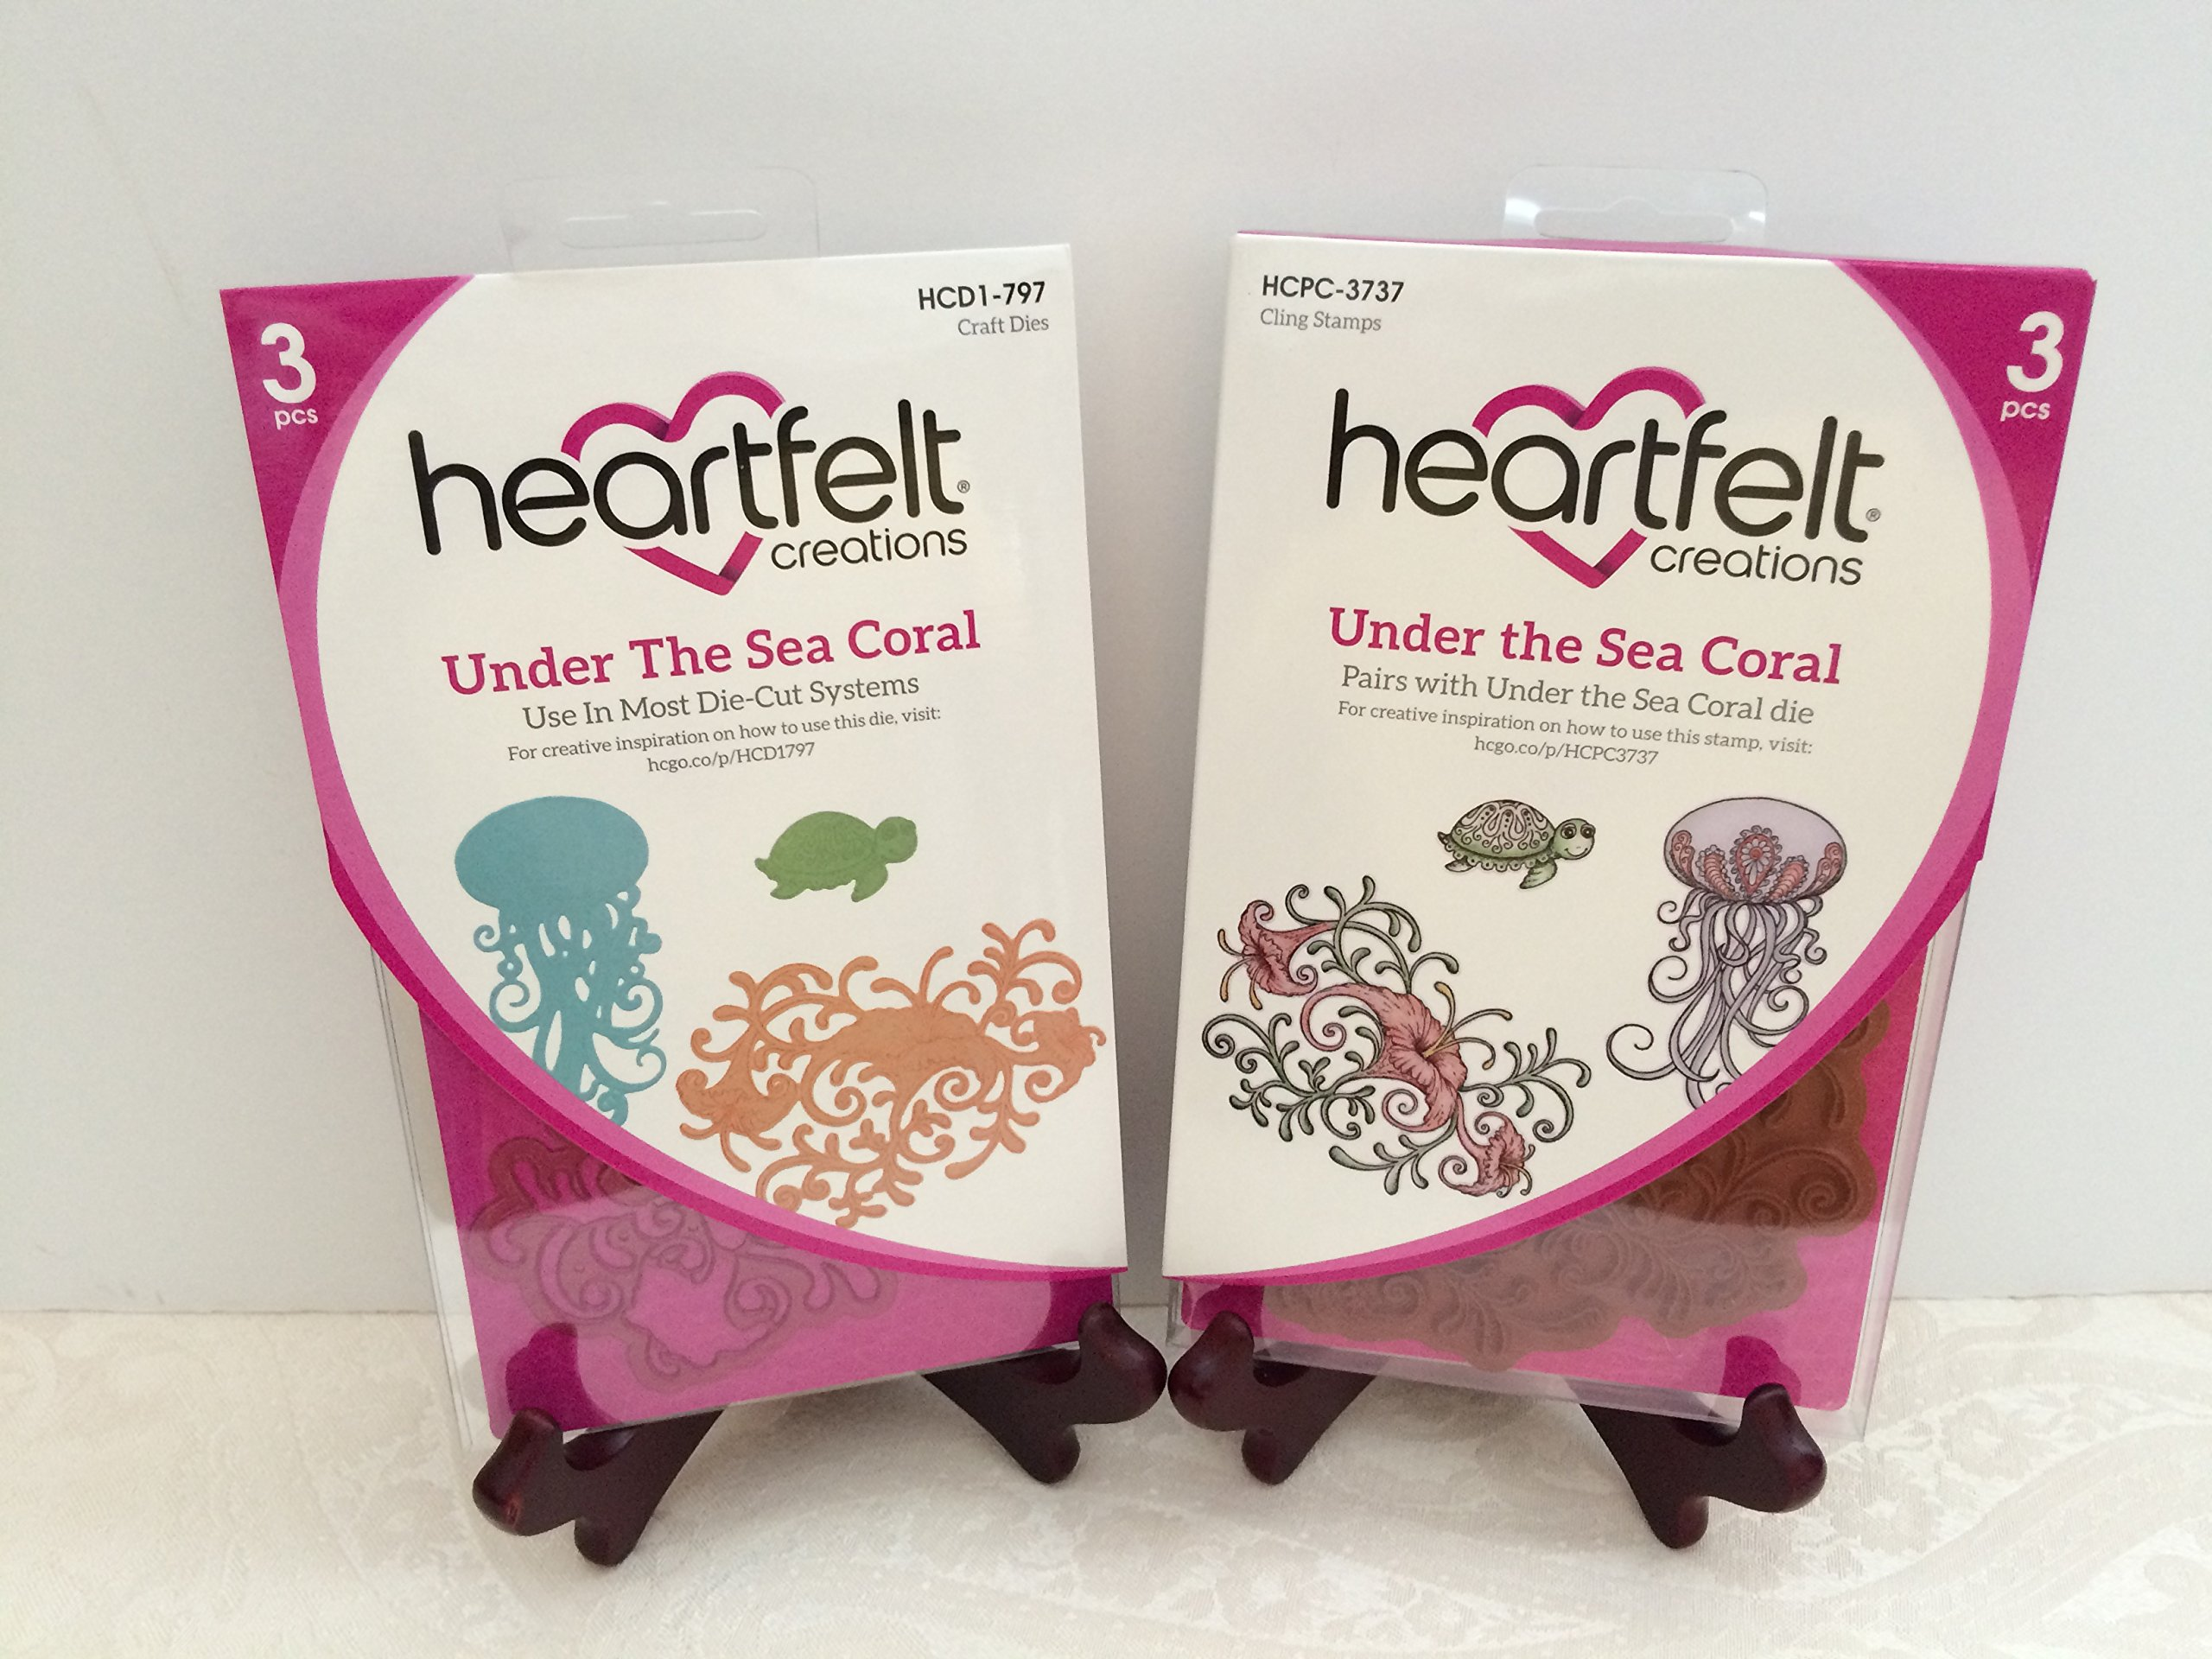 Heartfelt Creations Bundle Dies+Stamp Under The Sea Coral, HCD797+HCPC3737